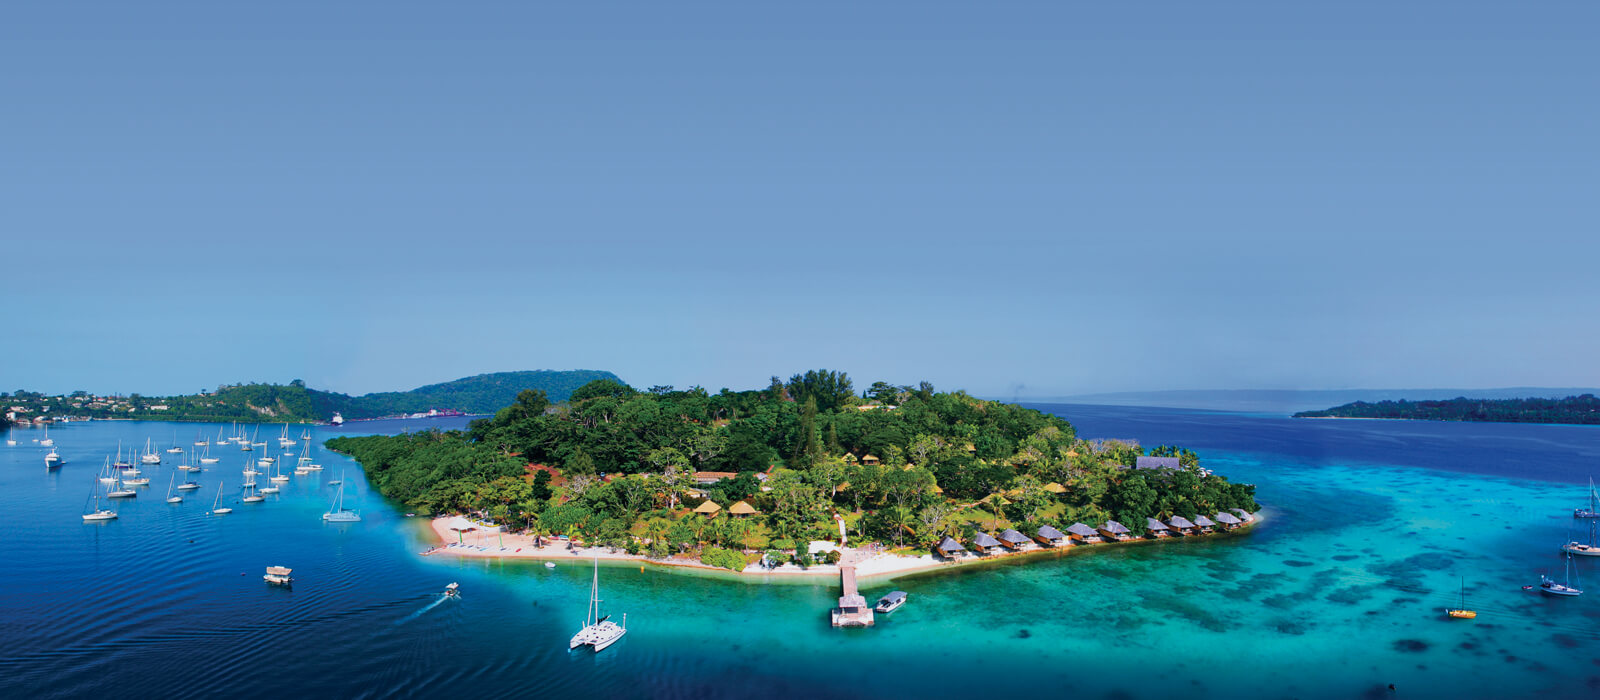 Iririki Vanuatu Resort Beach Island Holiday Destination